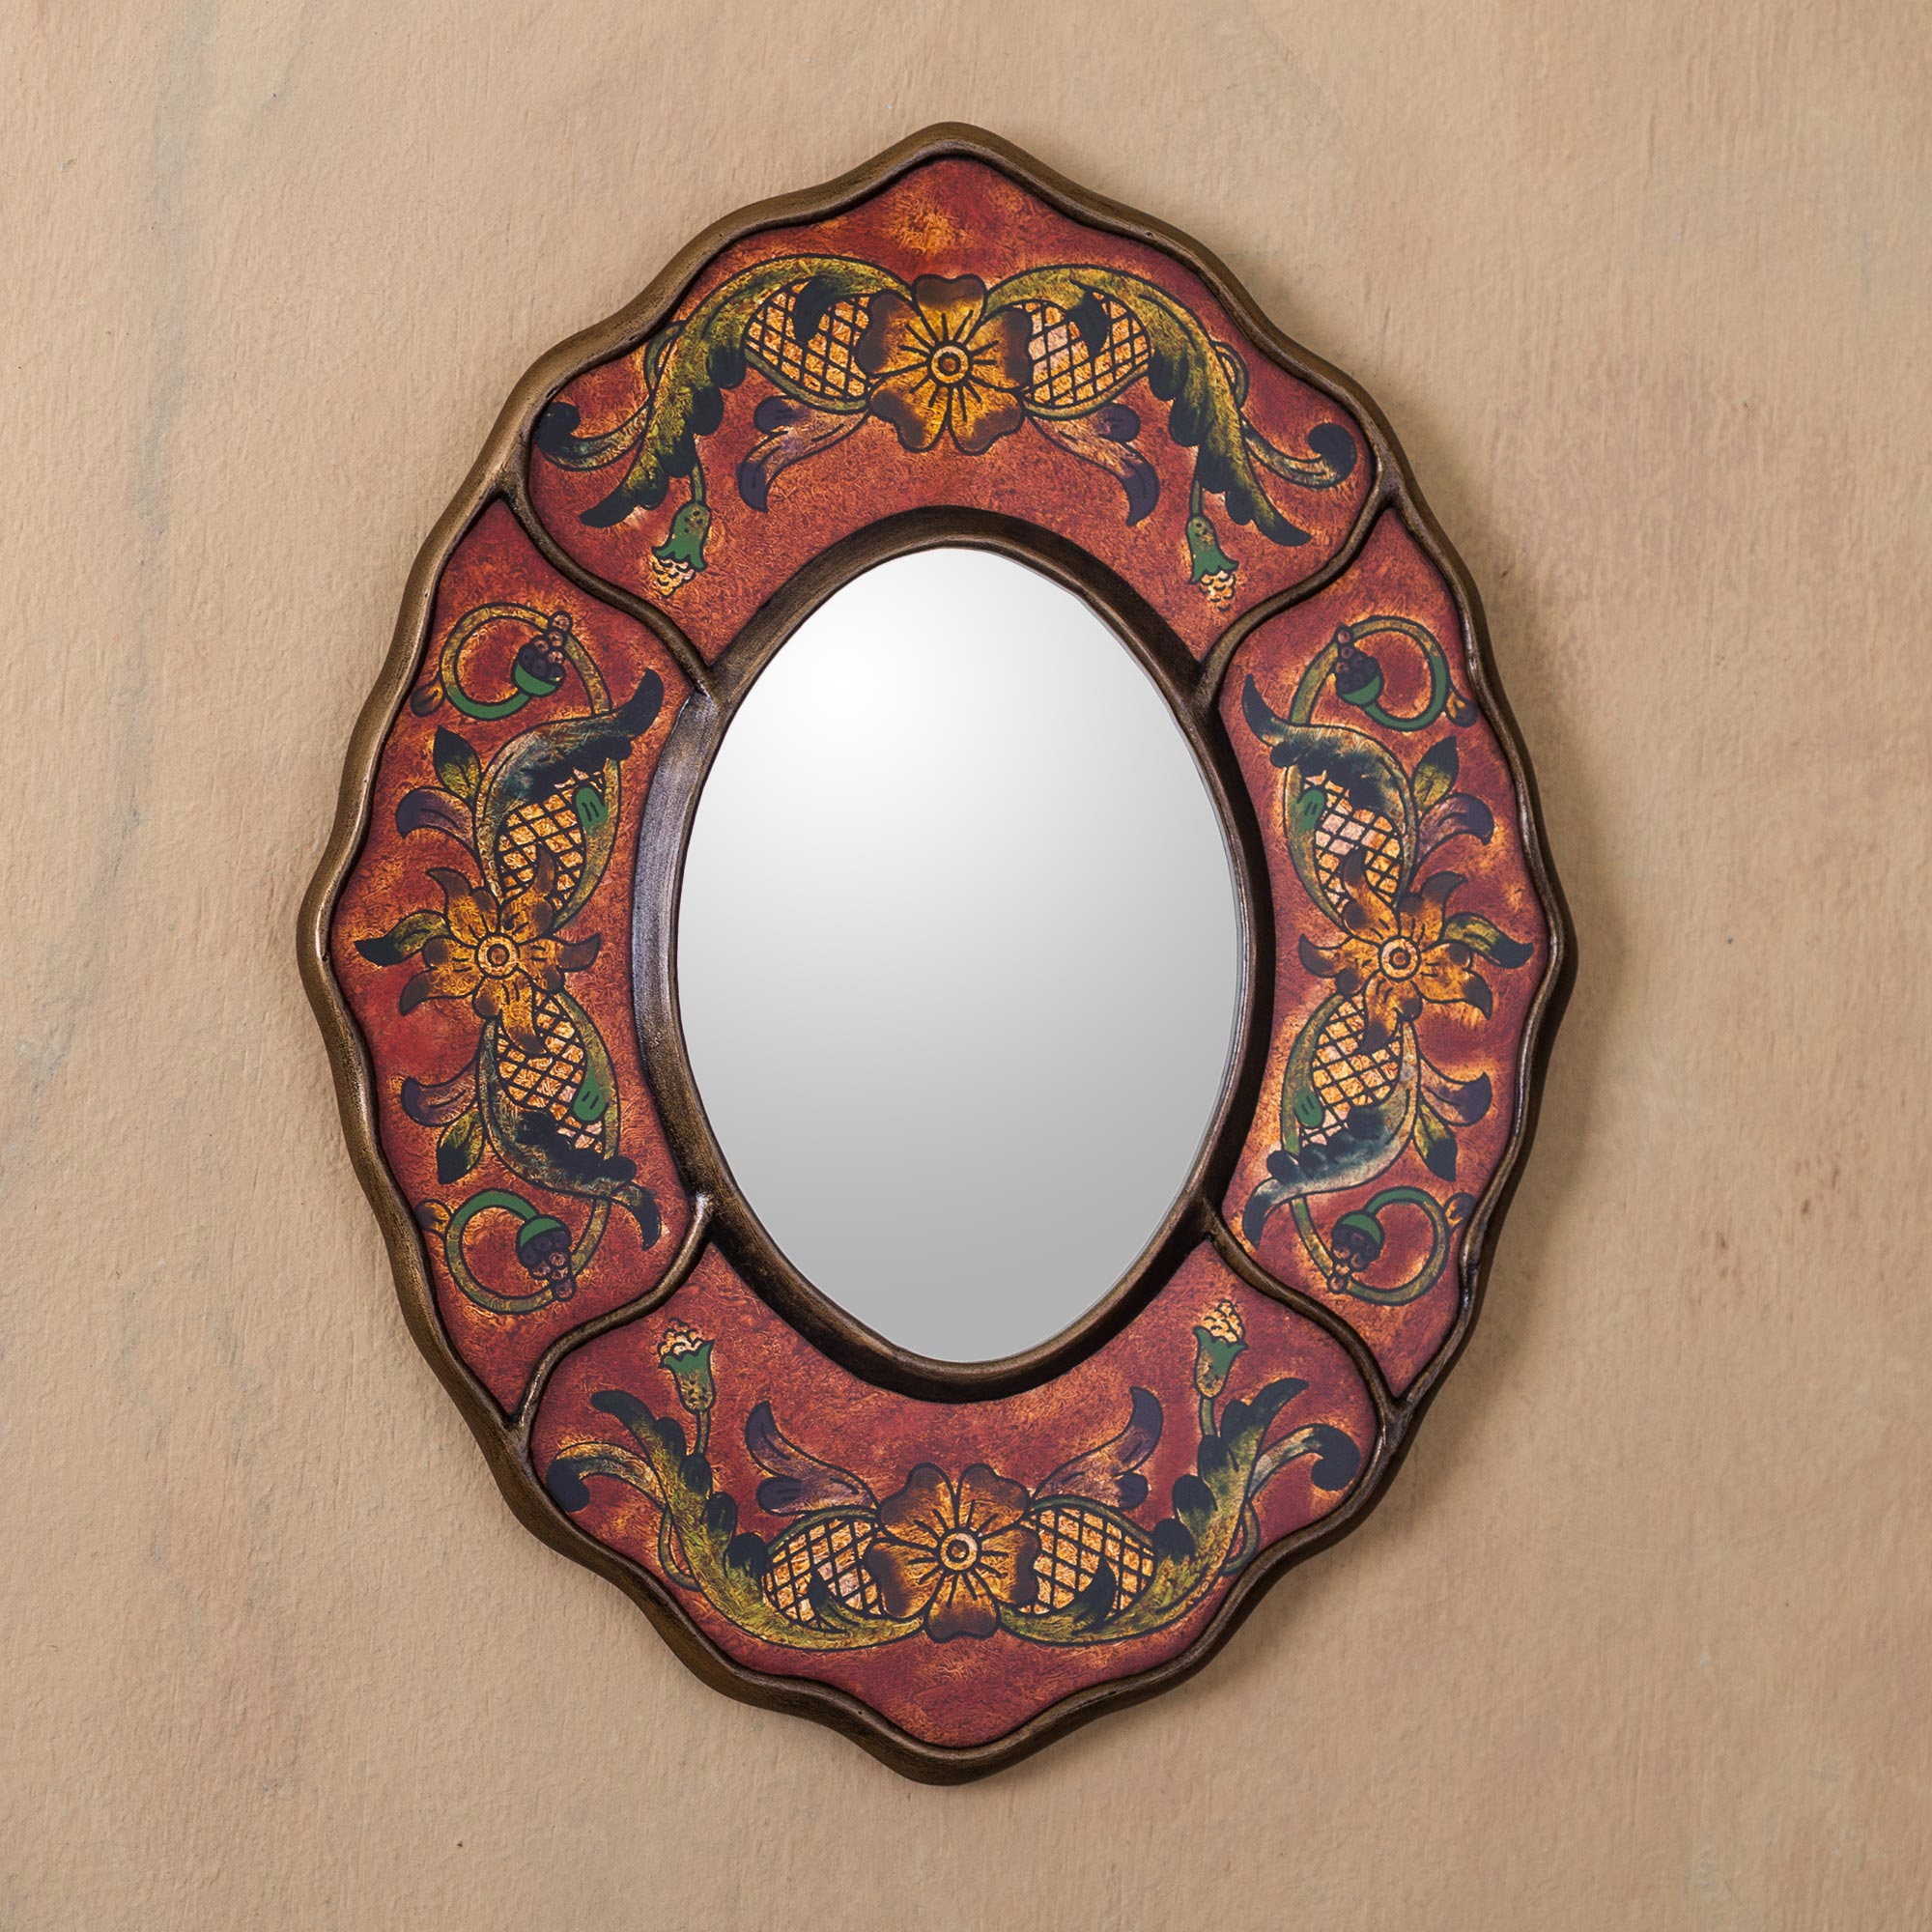 Vintage Style Reverse Painted Glass Wall Mirror hand crafted Peru, 'Red Colonial Wreath' Decorating a small space with mirrors